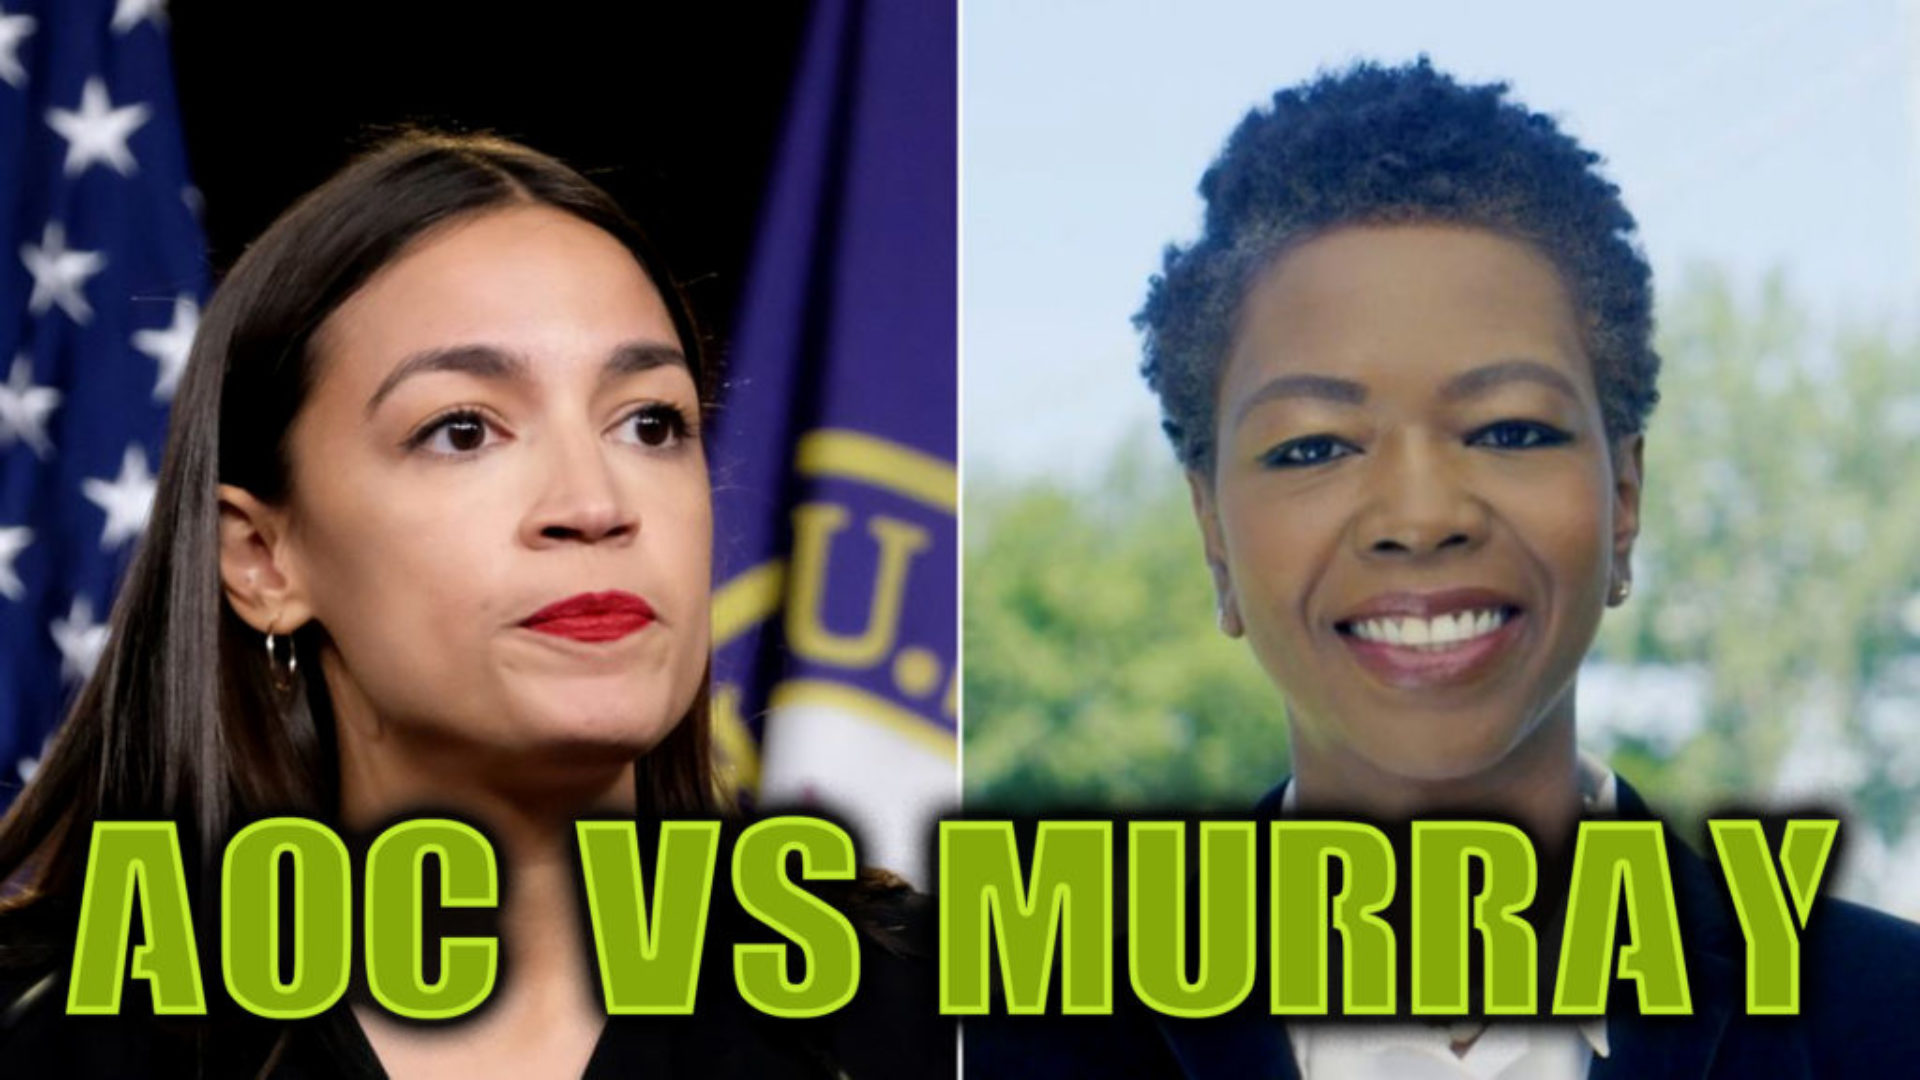 aoc-vs-murray